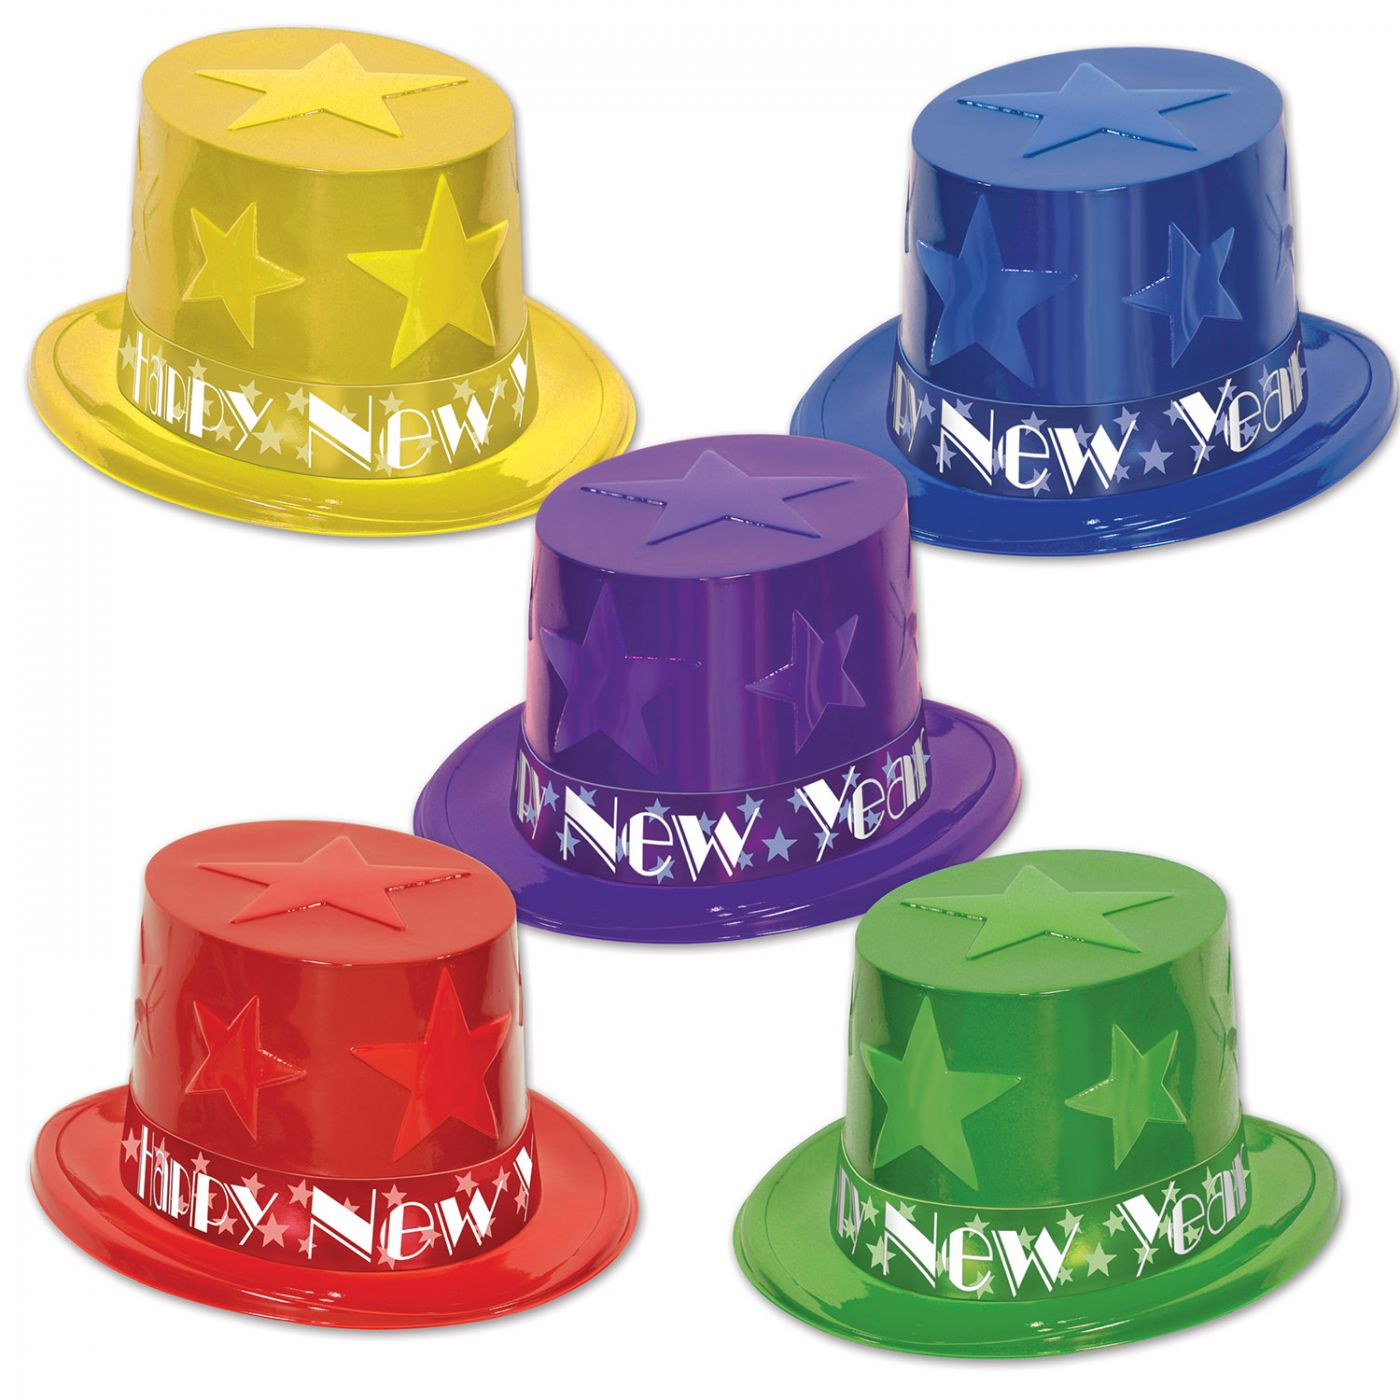 New Year Star Toppers (25) image